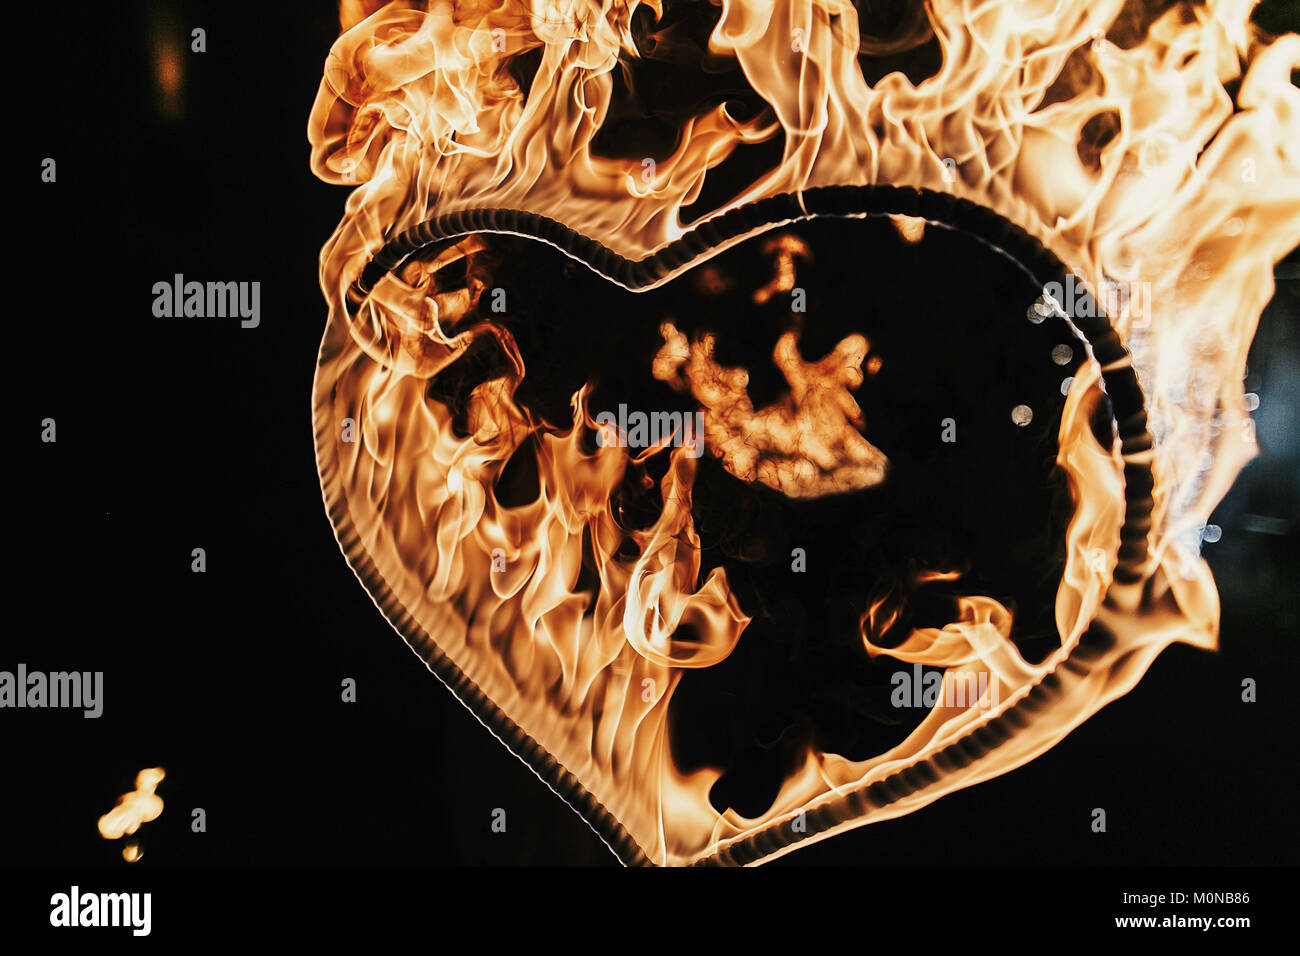 heart shaped firework on black background, fire show in night. happy valentine's day card. bengal fire burning heart. space for text. wedding or valen Stock Photo